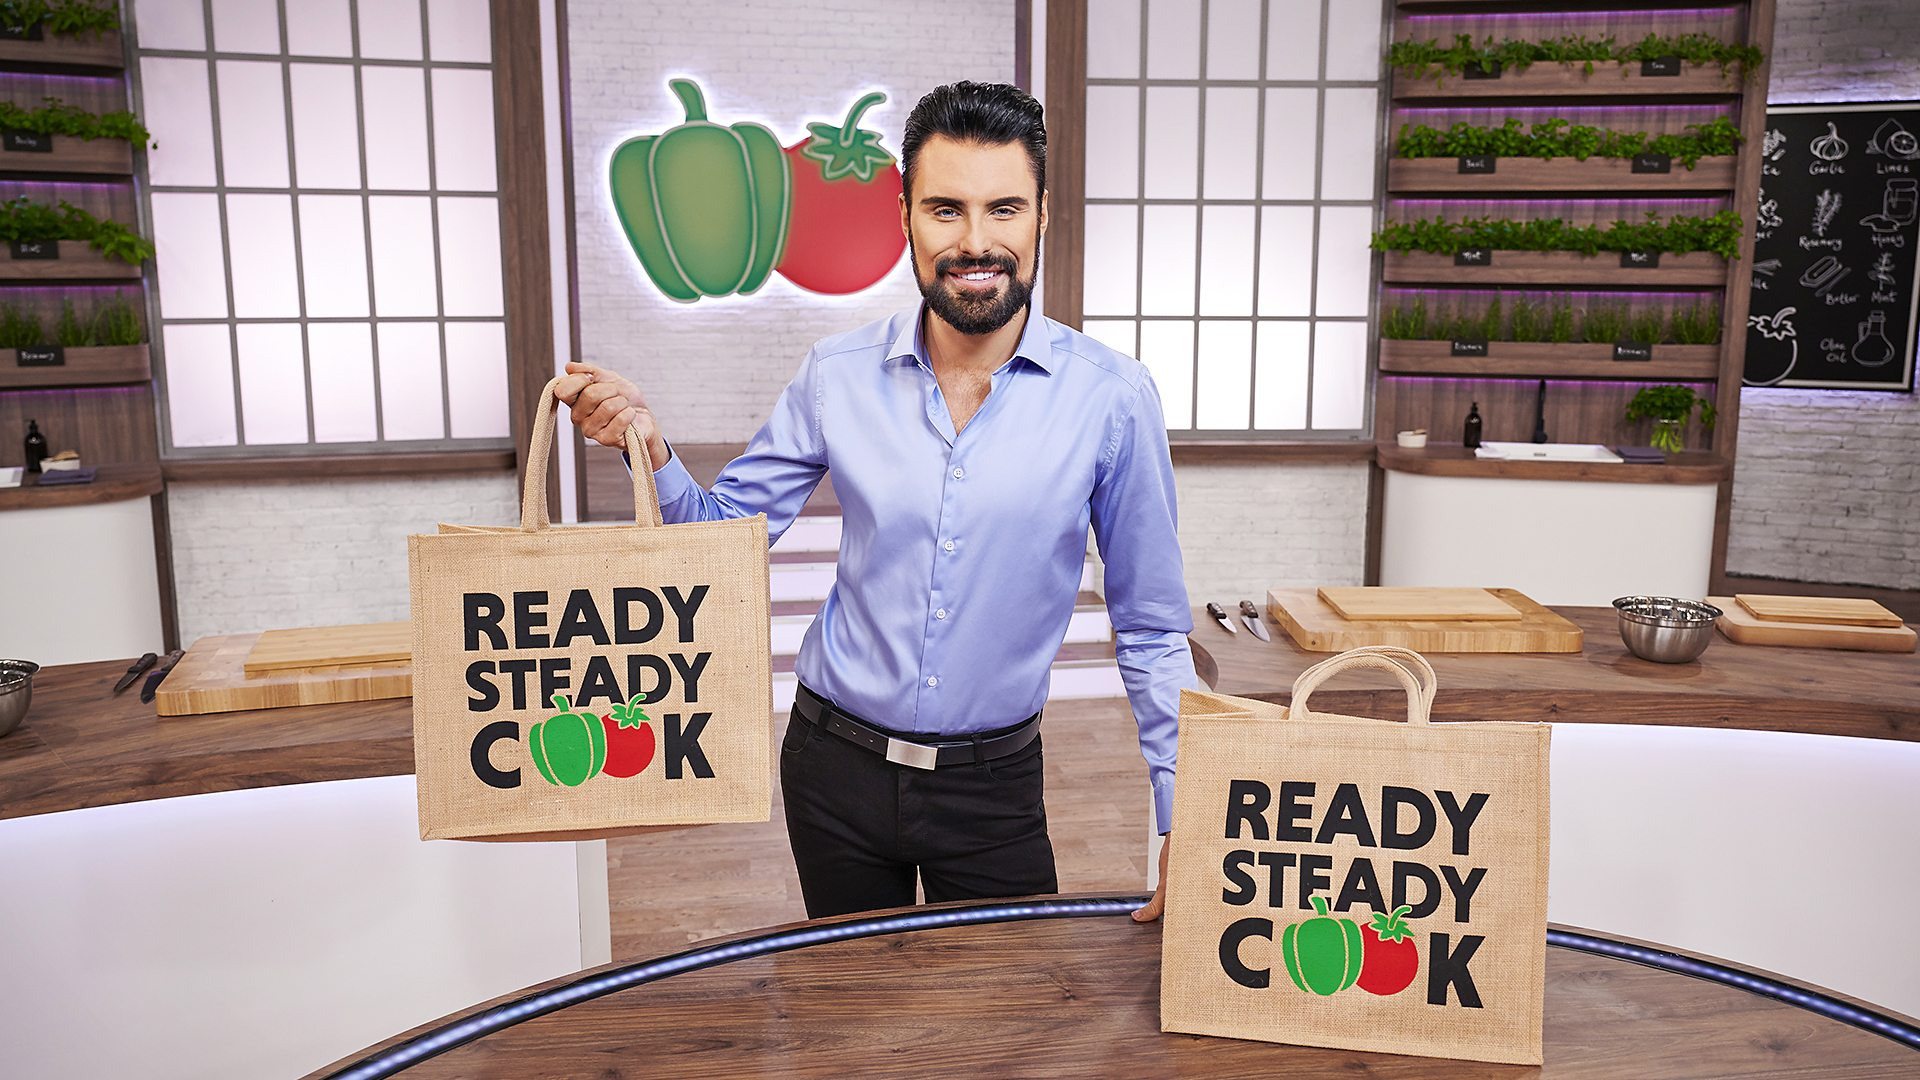 Show Ready Steady Cook